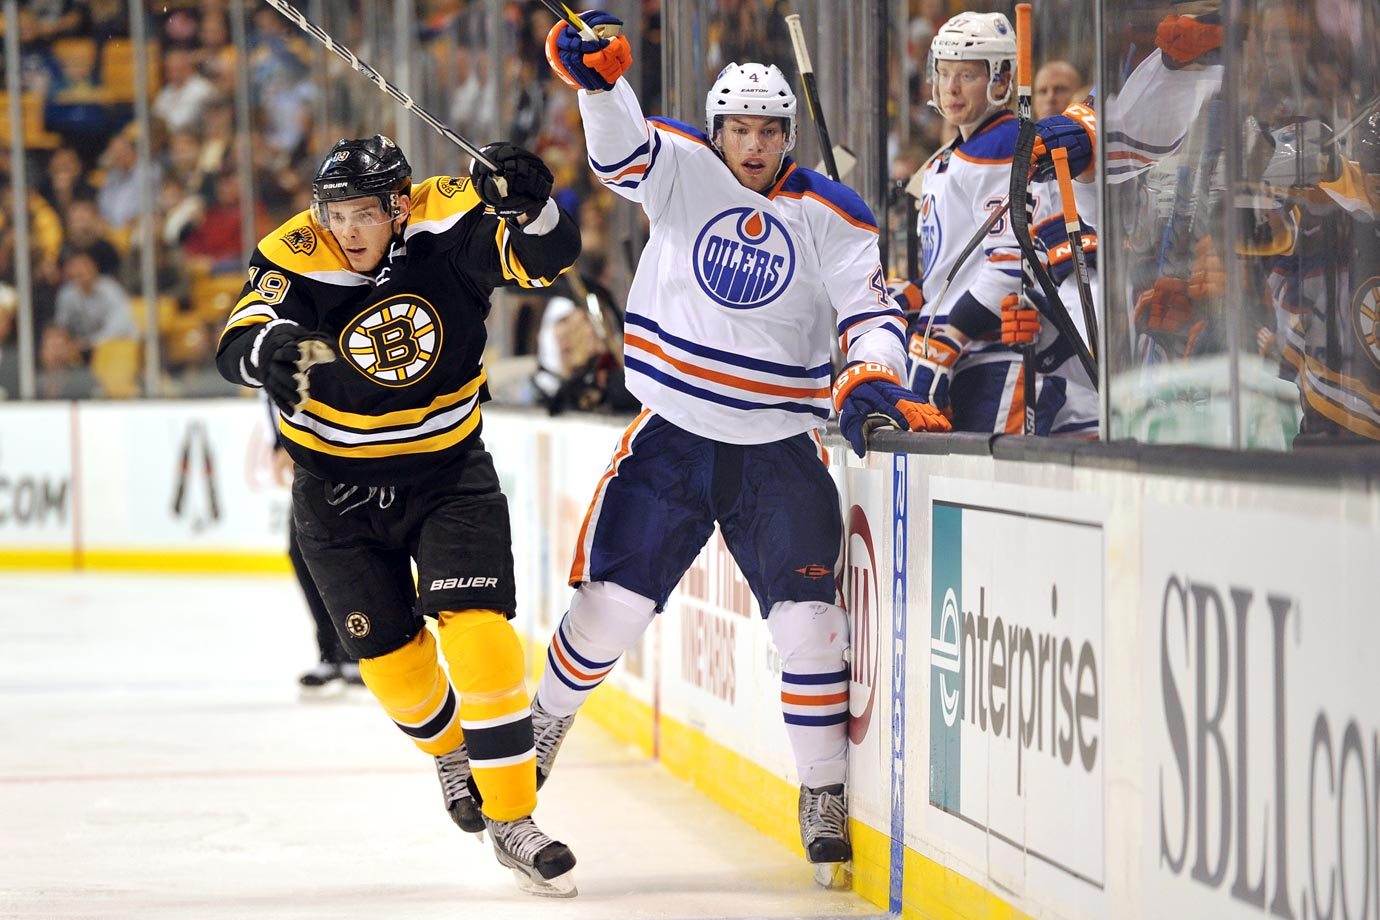 The Oilers chose Taylor over Tyler (Seguin) in a draft that had two players worthy of being selected first overall. Hall won back-to-back Memorial Cups with the Windsor Spitfires (OHL), taking home MVP honors both times, and scored 22 goals in 65 games with Edmonton his rookie season. He was the fourth straight Ontario Hockey League player chosen with the No. 1 pick. — Notable picks: No. 2: Tyler Seguin, C, Boston Bruins | No. 4: Ryan Johanson, C, Columbus Blue Jackets | No. 7: Jeff Skinner, C, Carolina Hurricanes | No. 16: Vladimir Tarasenko, RW, St. Louis Blues | No. 187: Frederik Andersen, G, Carolina Hurricanes